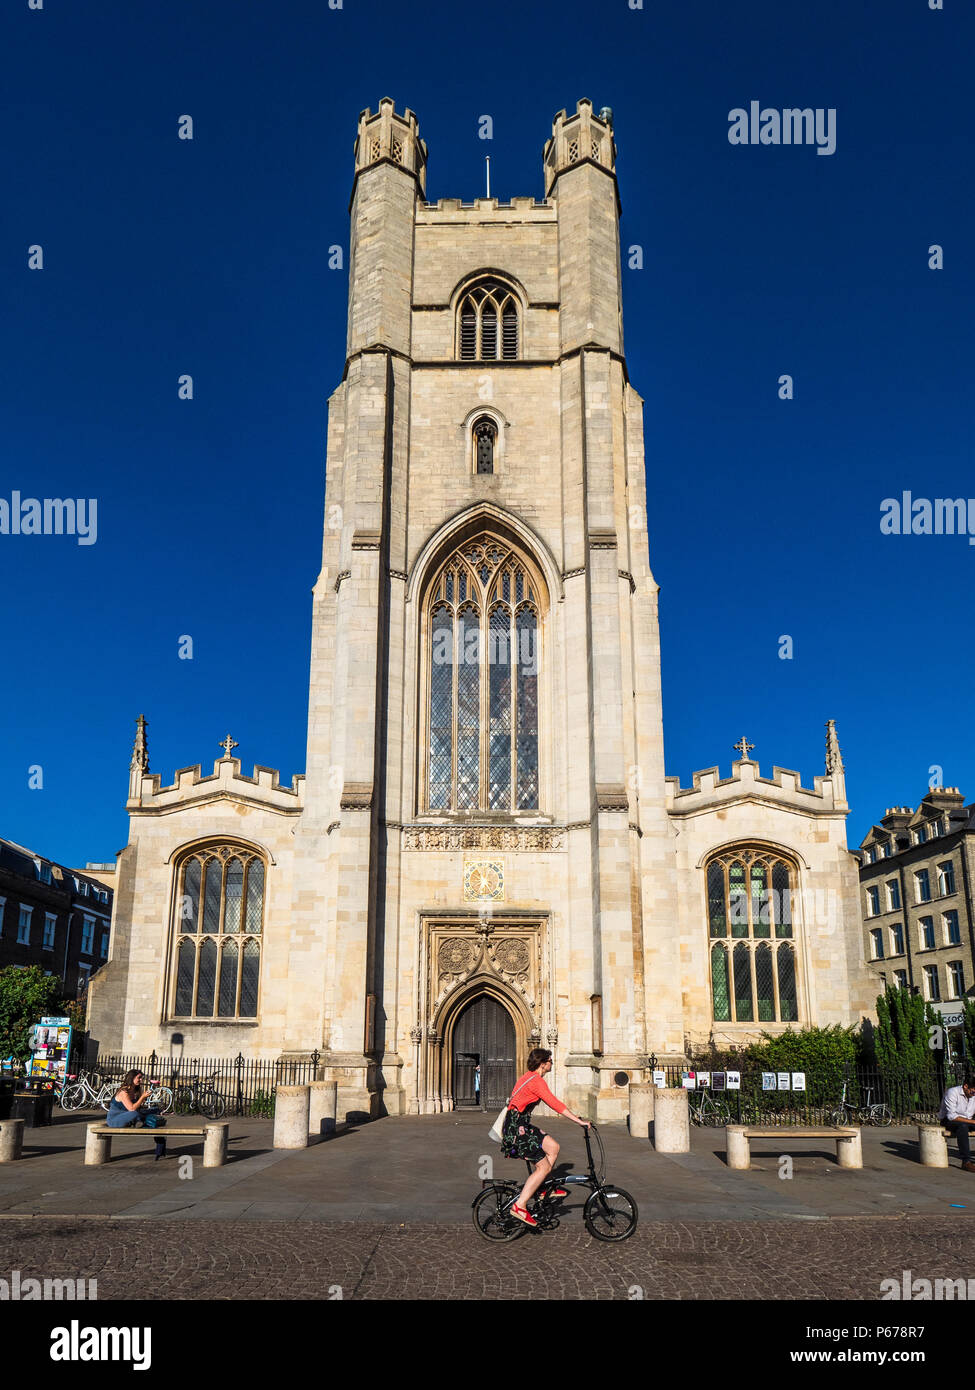 Cambridge Tourism - cyclists pass Great St Mary church in central Cambridge. The church, rebuilt after a fire in 1290, is Cambridge University Church - Stock Image